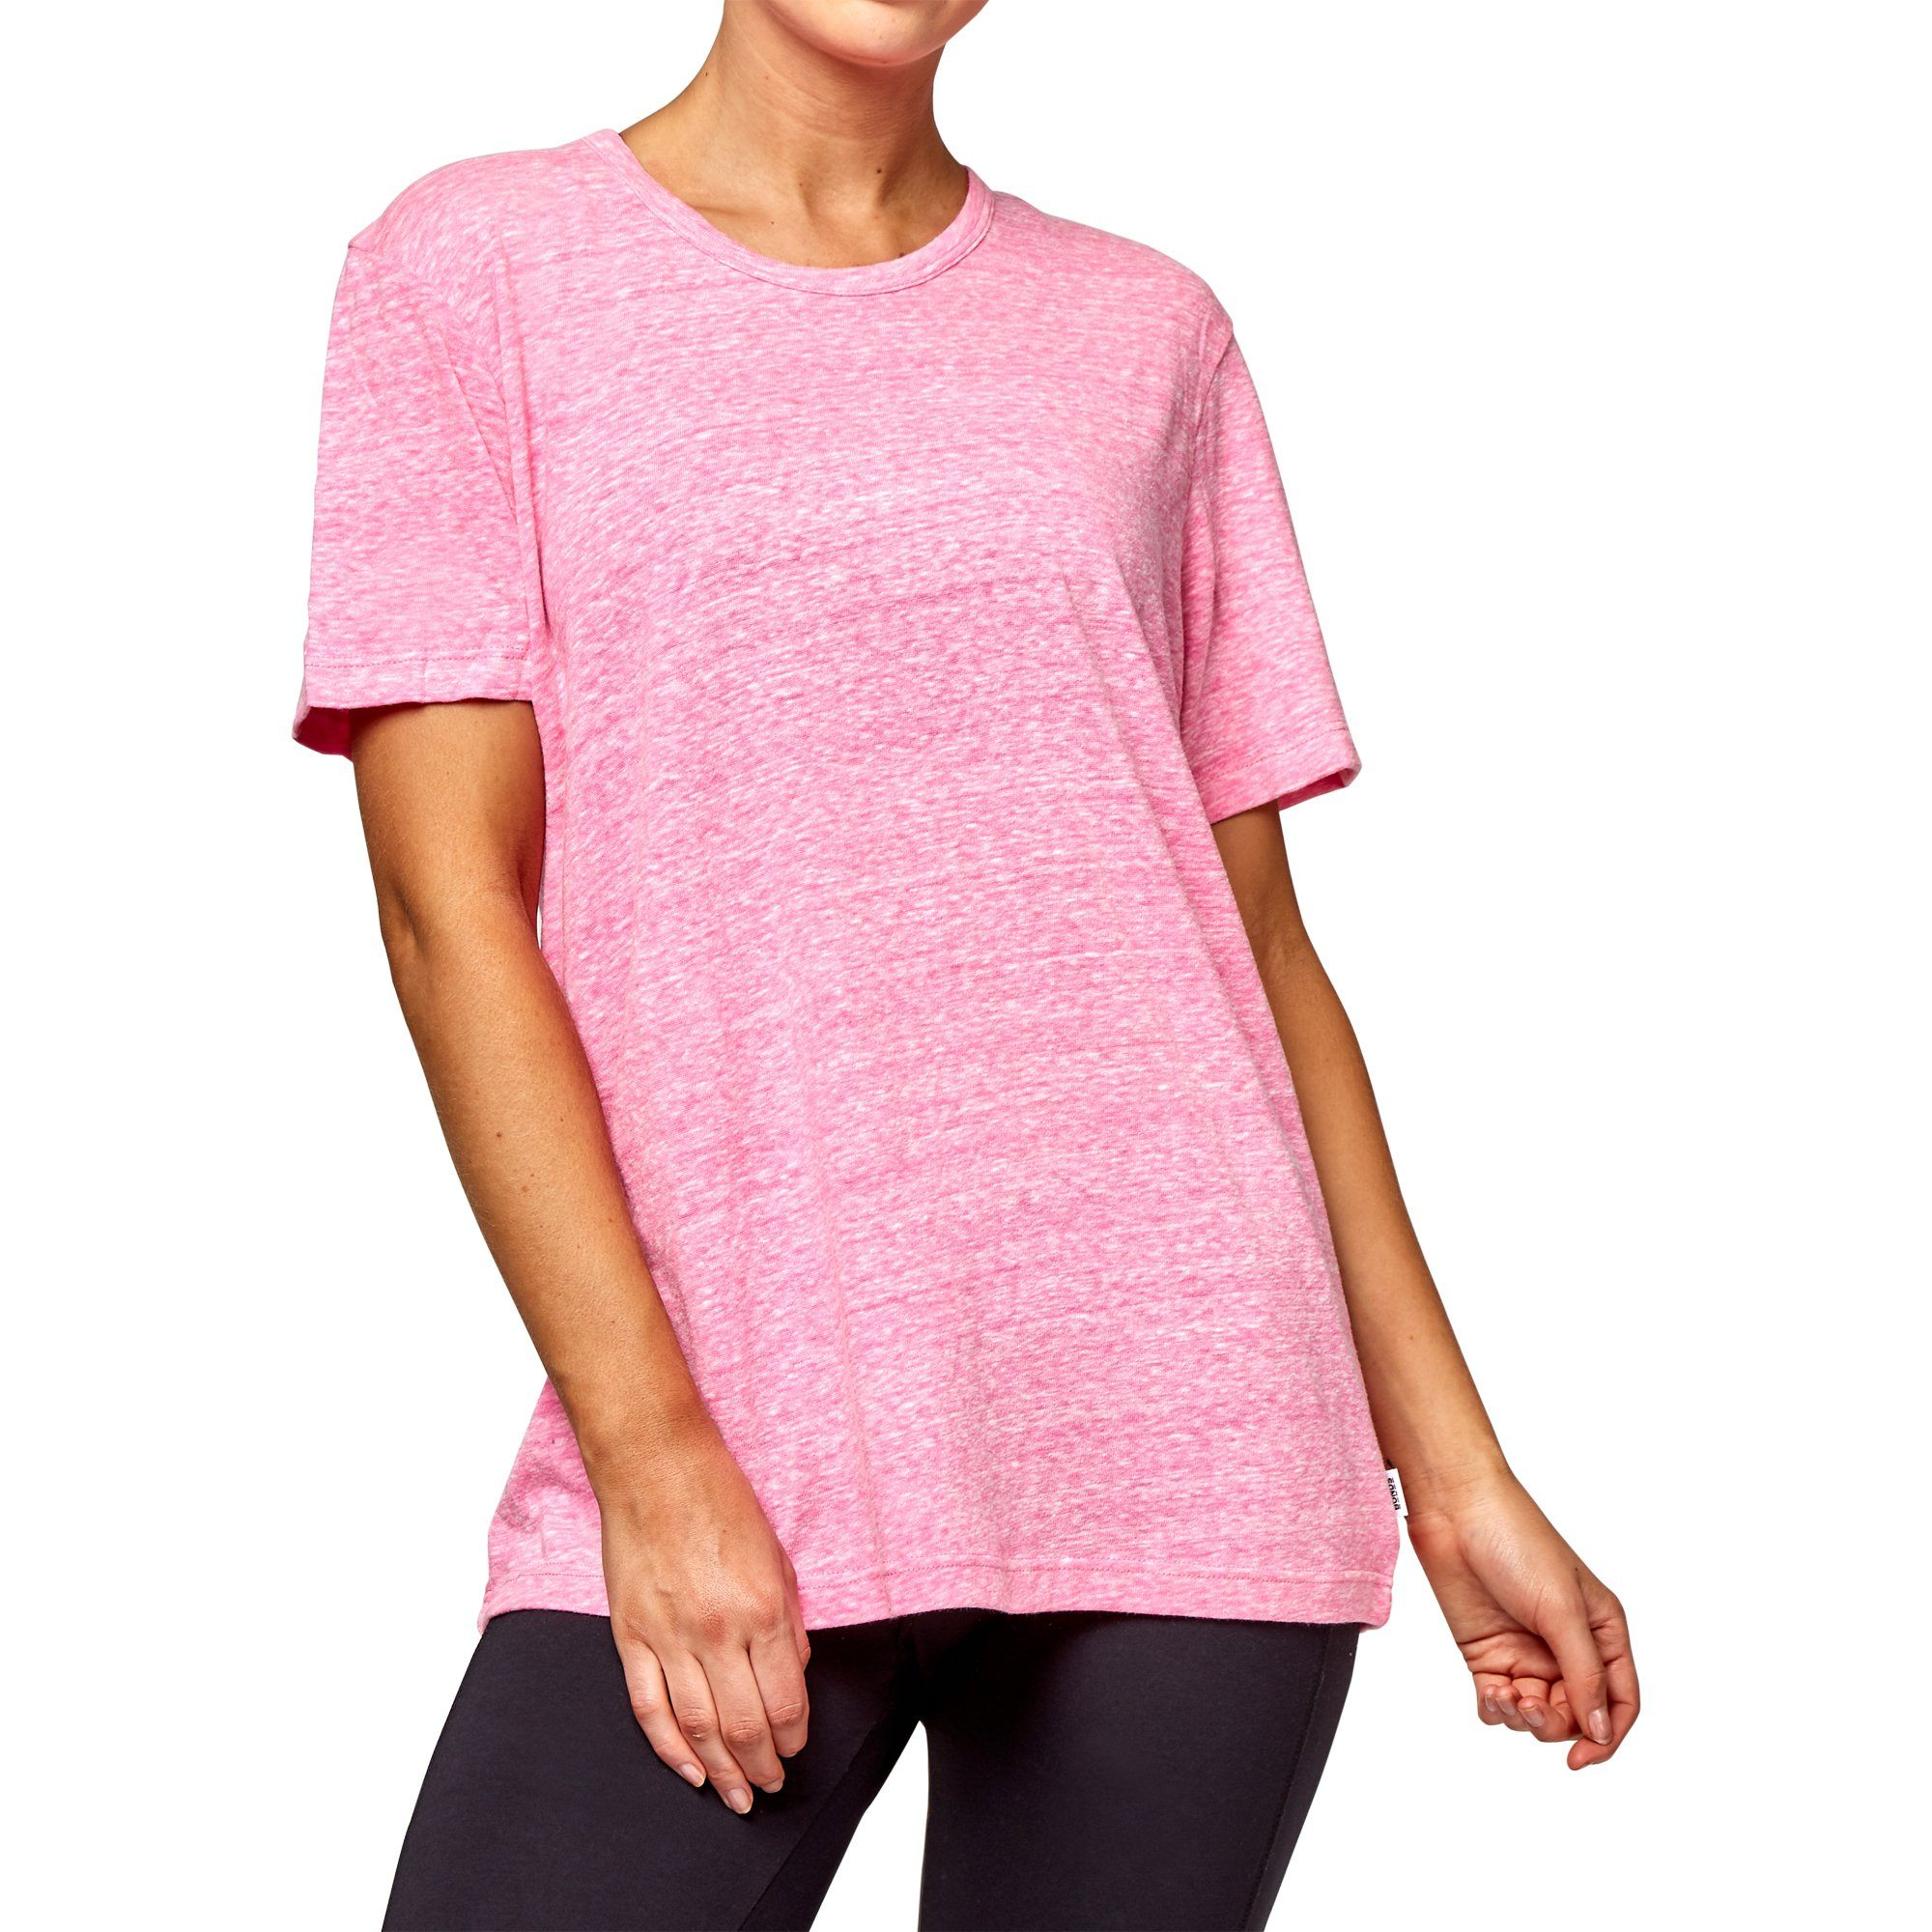 Bonds Women's Triblend Crew Tee - Hot Purple Apparel Bonds  (2019304439867)